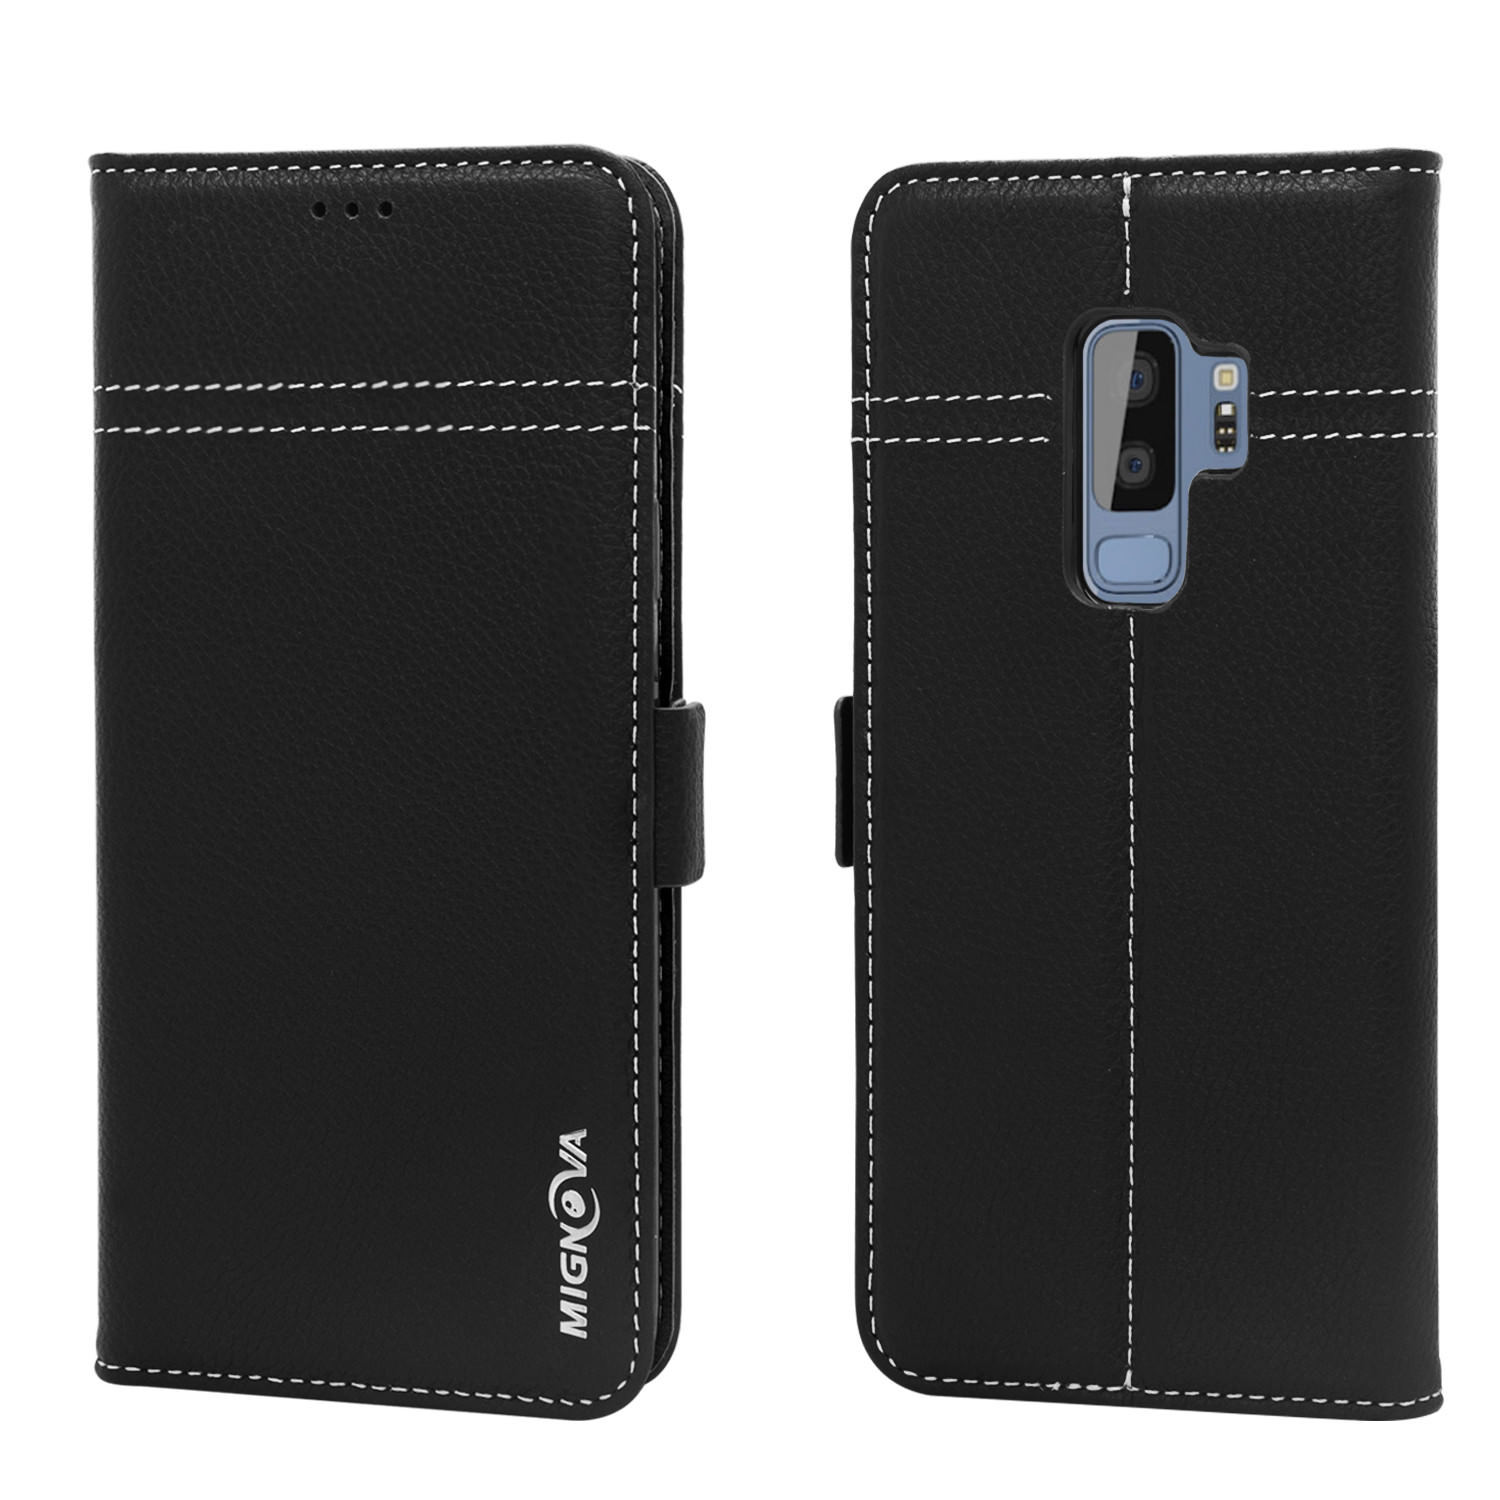 Mignova Galaxy S9 Plus Genuine Leather Case, Wallet Folding Flip Case with Kickstand, Card Holder, Magnetic Closure Protective Cover for Samsung Galaxy S9+ 2018 Release –(Black)